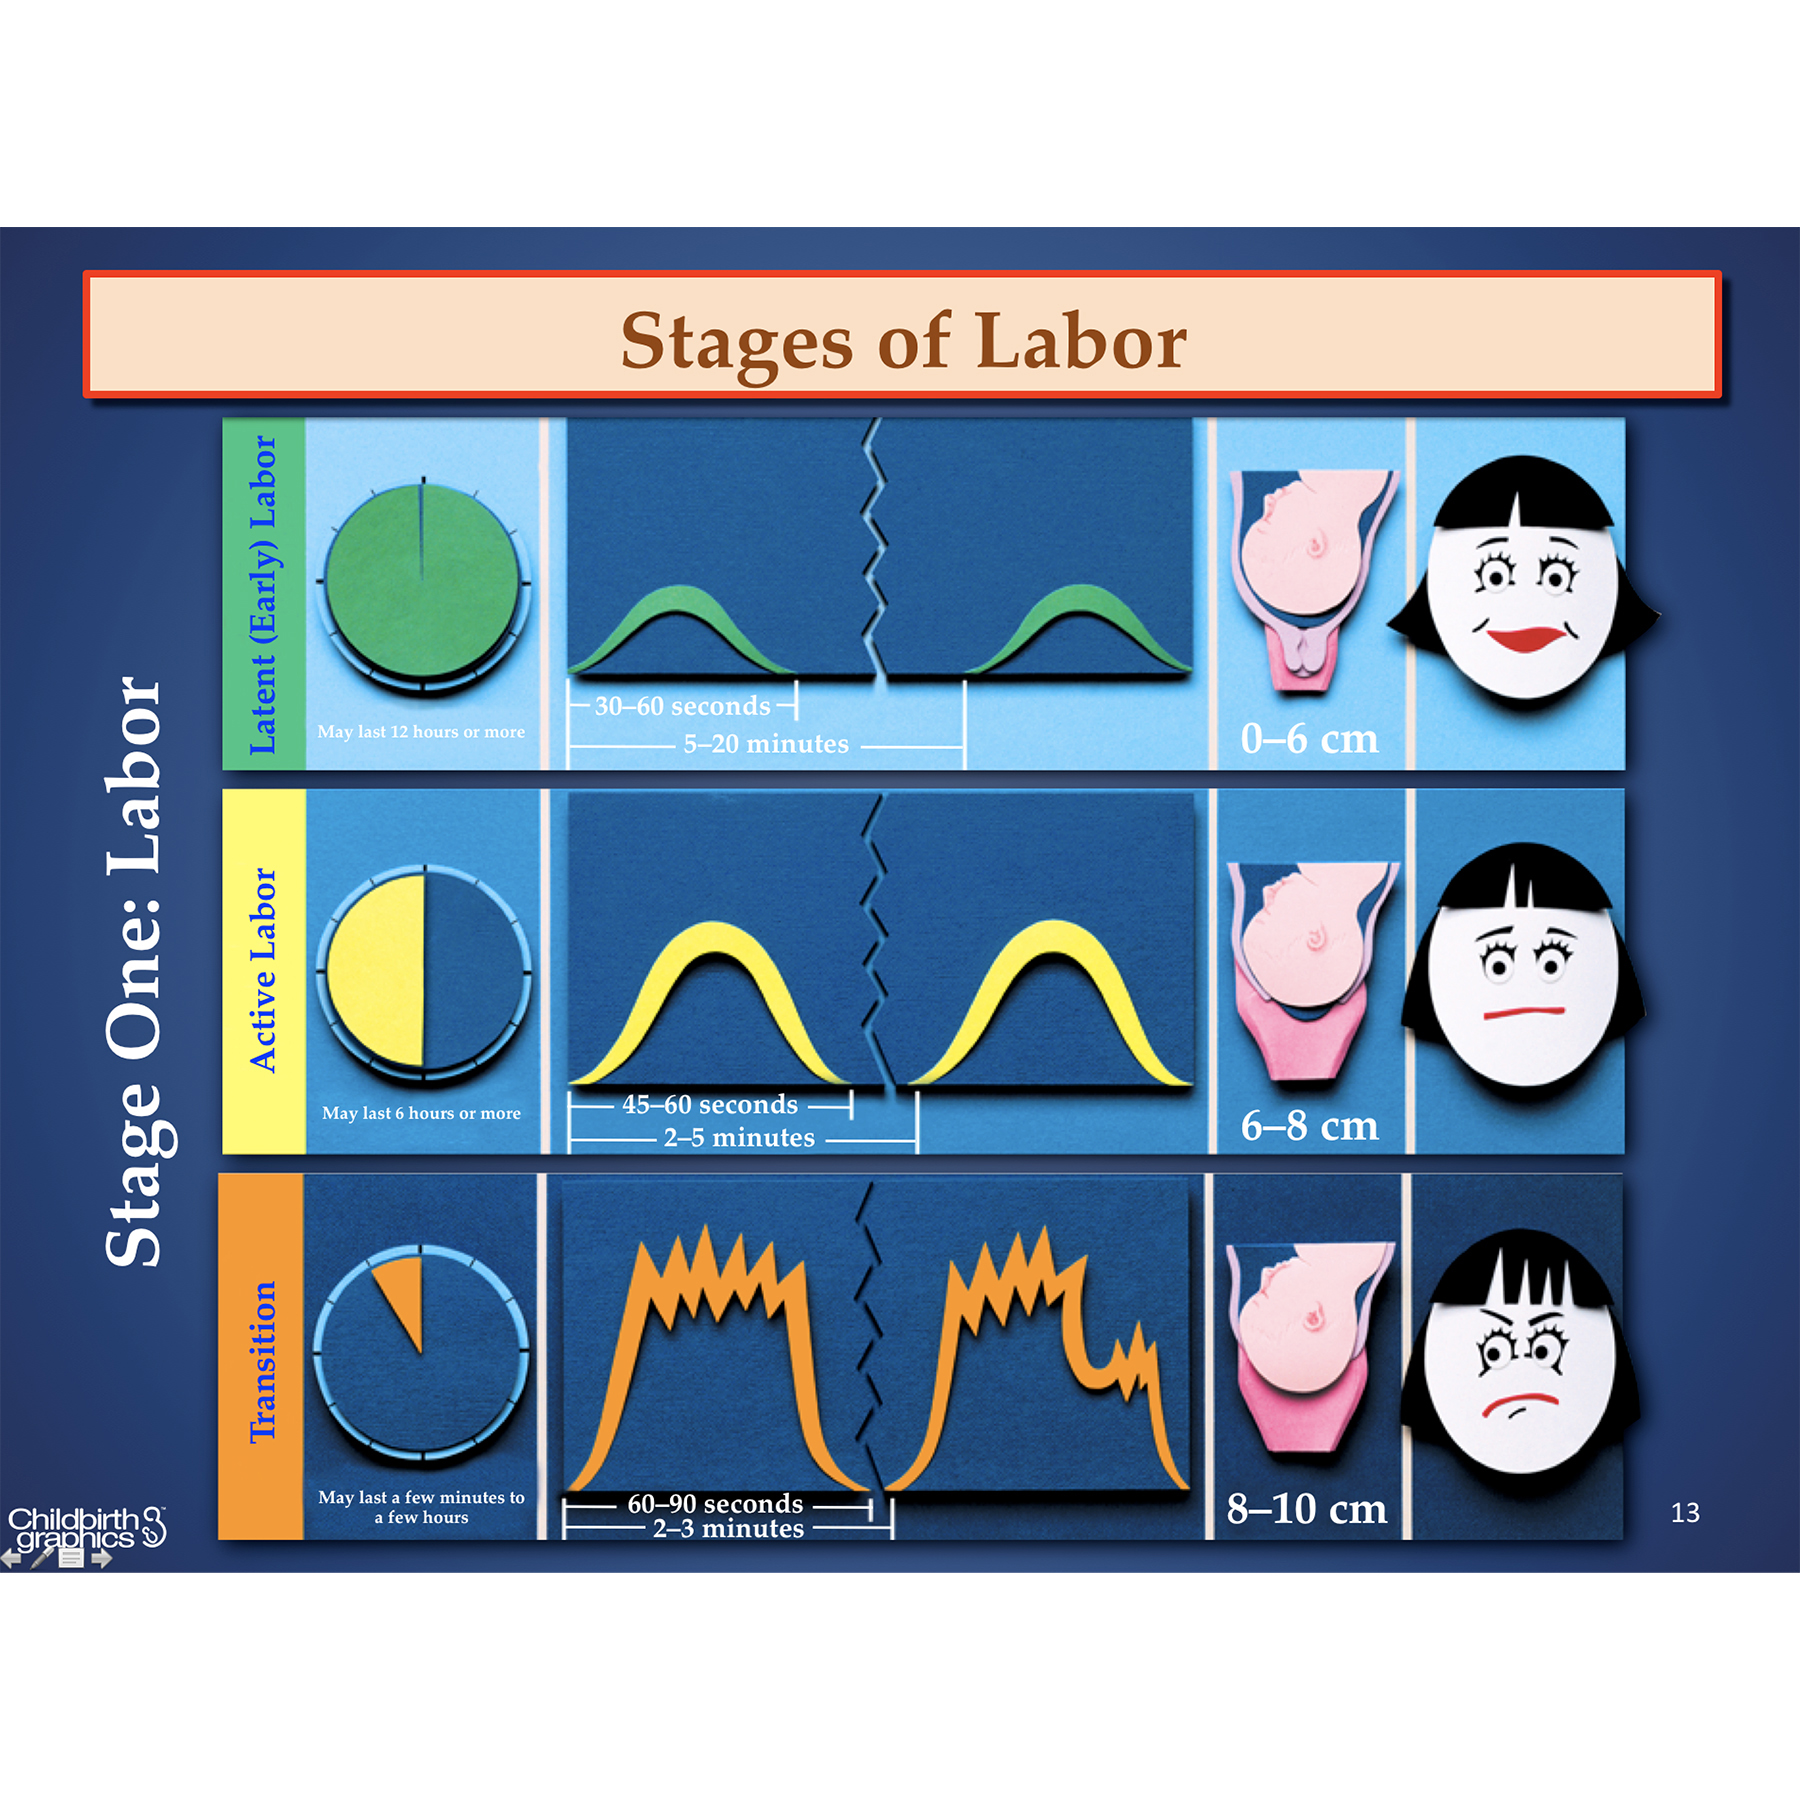 Labor and Birth PowerPoint,English and Spanish powerpoint presentations using paper sculpture illustrations to explain primary labor and birth processes, frame depicts stage 1 labor, Childbirth Graph